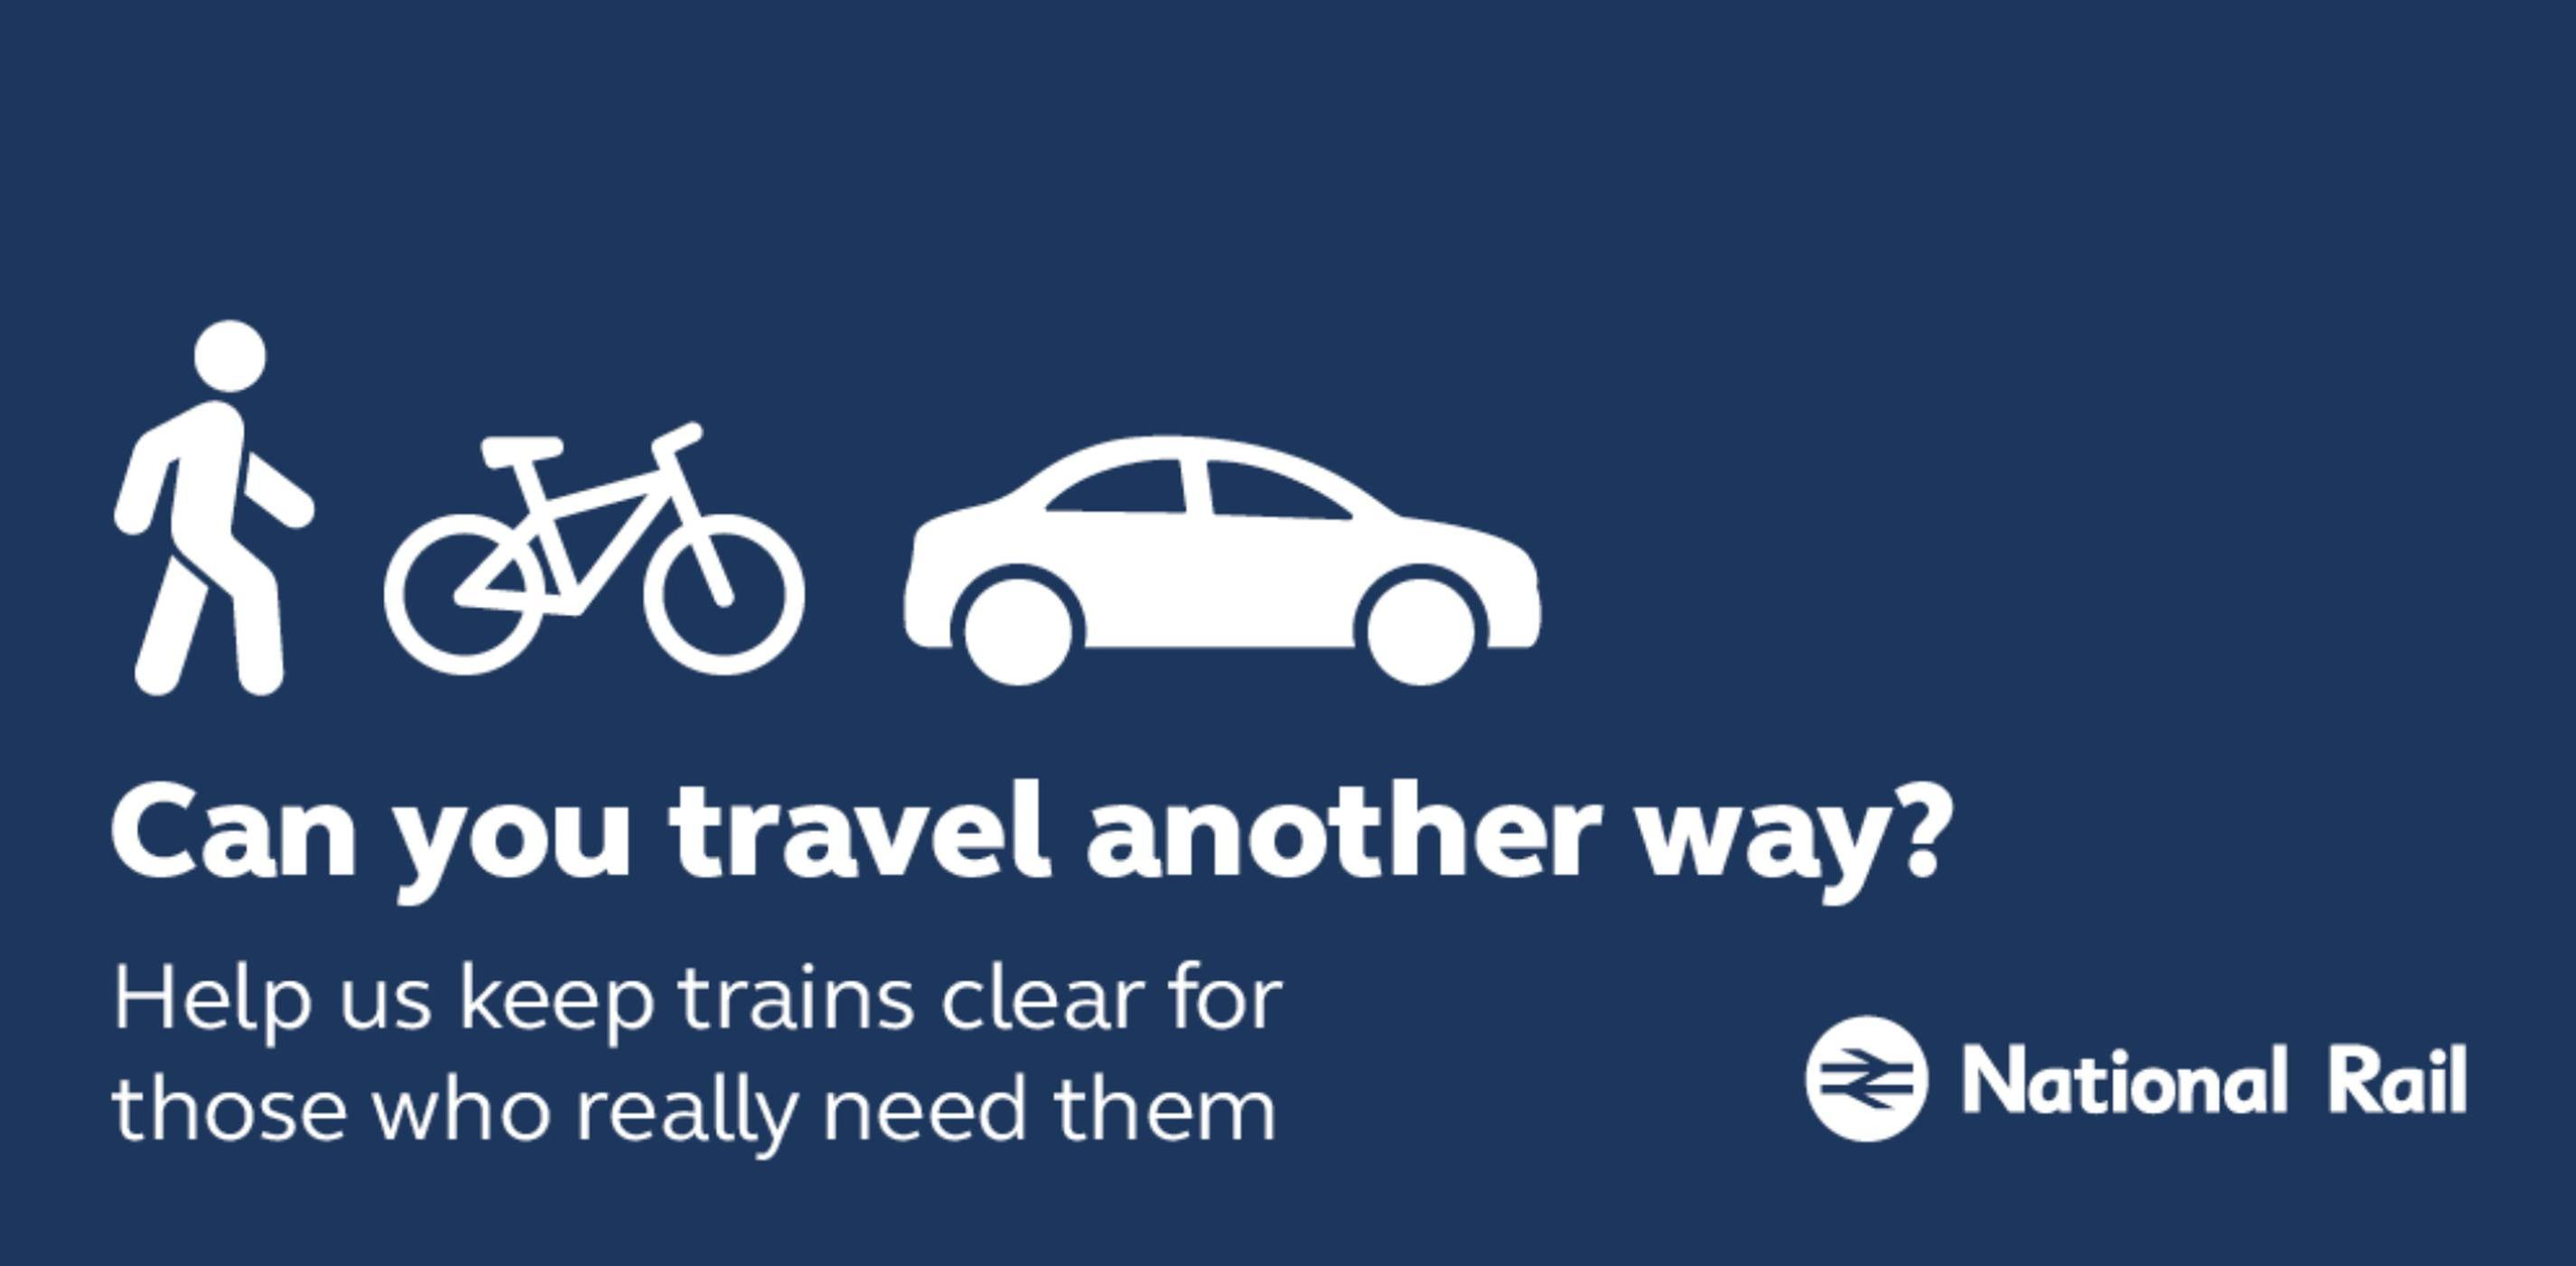 Network Rail is asking commuters to walk, cycle or drive to work in order to take pressure off train services